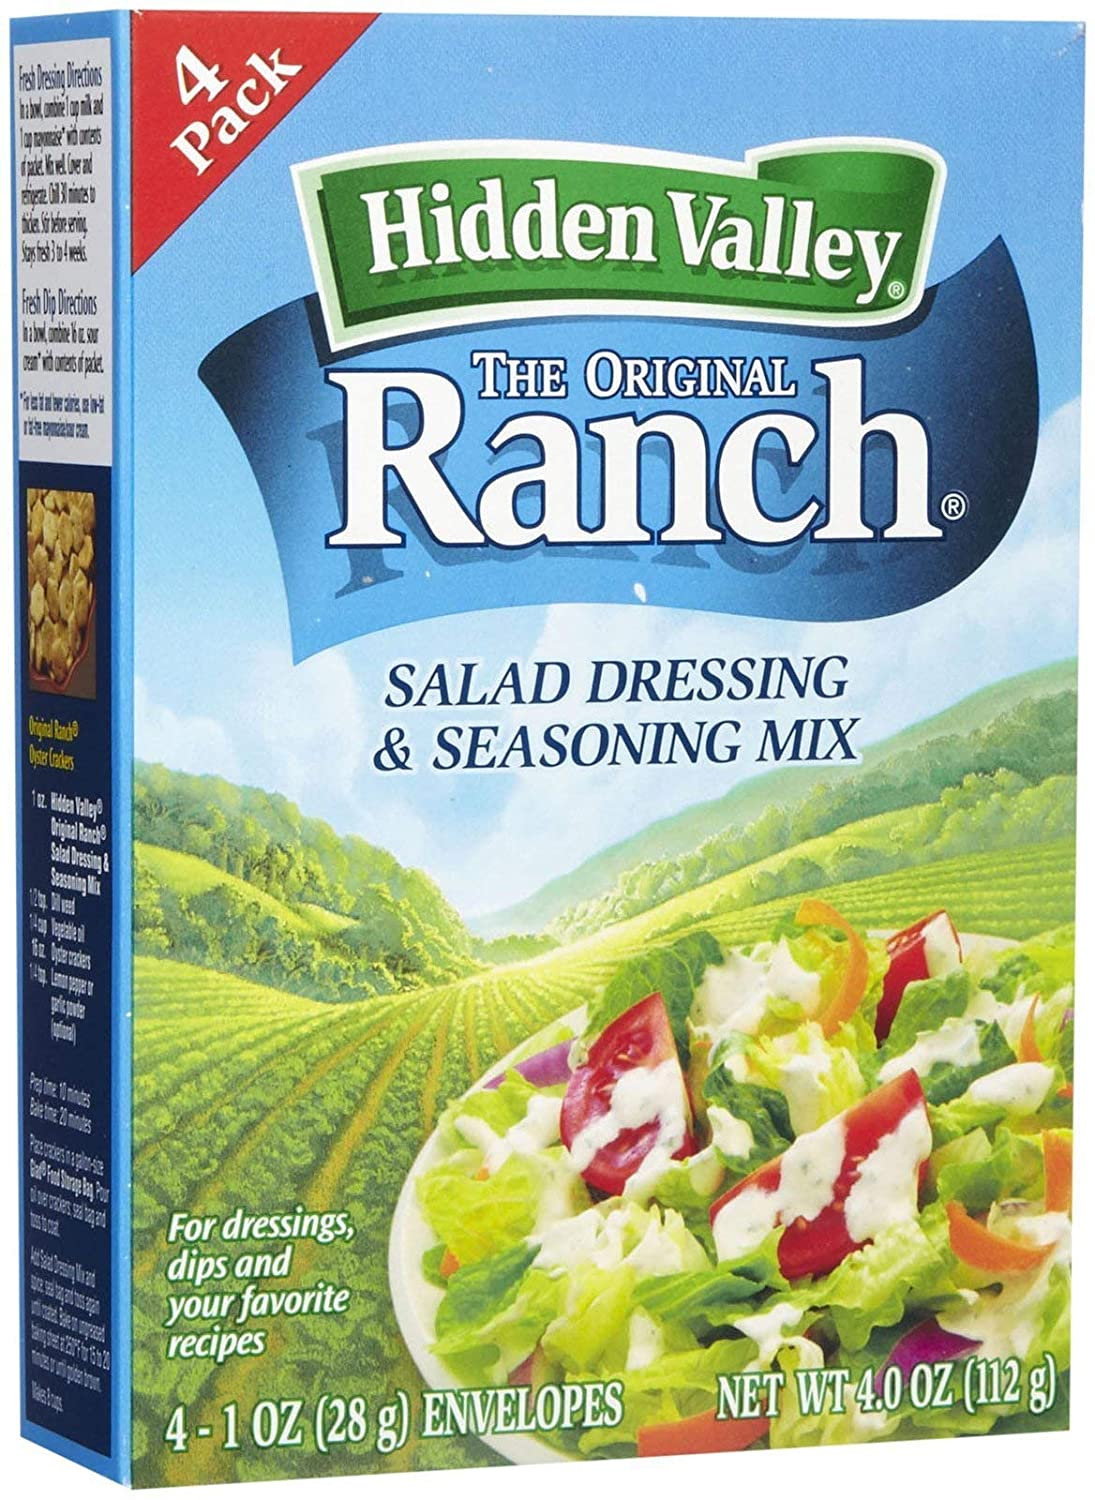 Hidden Valley Original Ranch Salad Dressing Seasoning Mix Gluten Free Keto Friendly 4 Packets Package May Vary 0 35 Oz Pack Of 4 Set Of 3 Amazon Com Grocery Gourmet Food